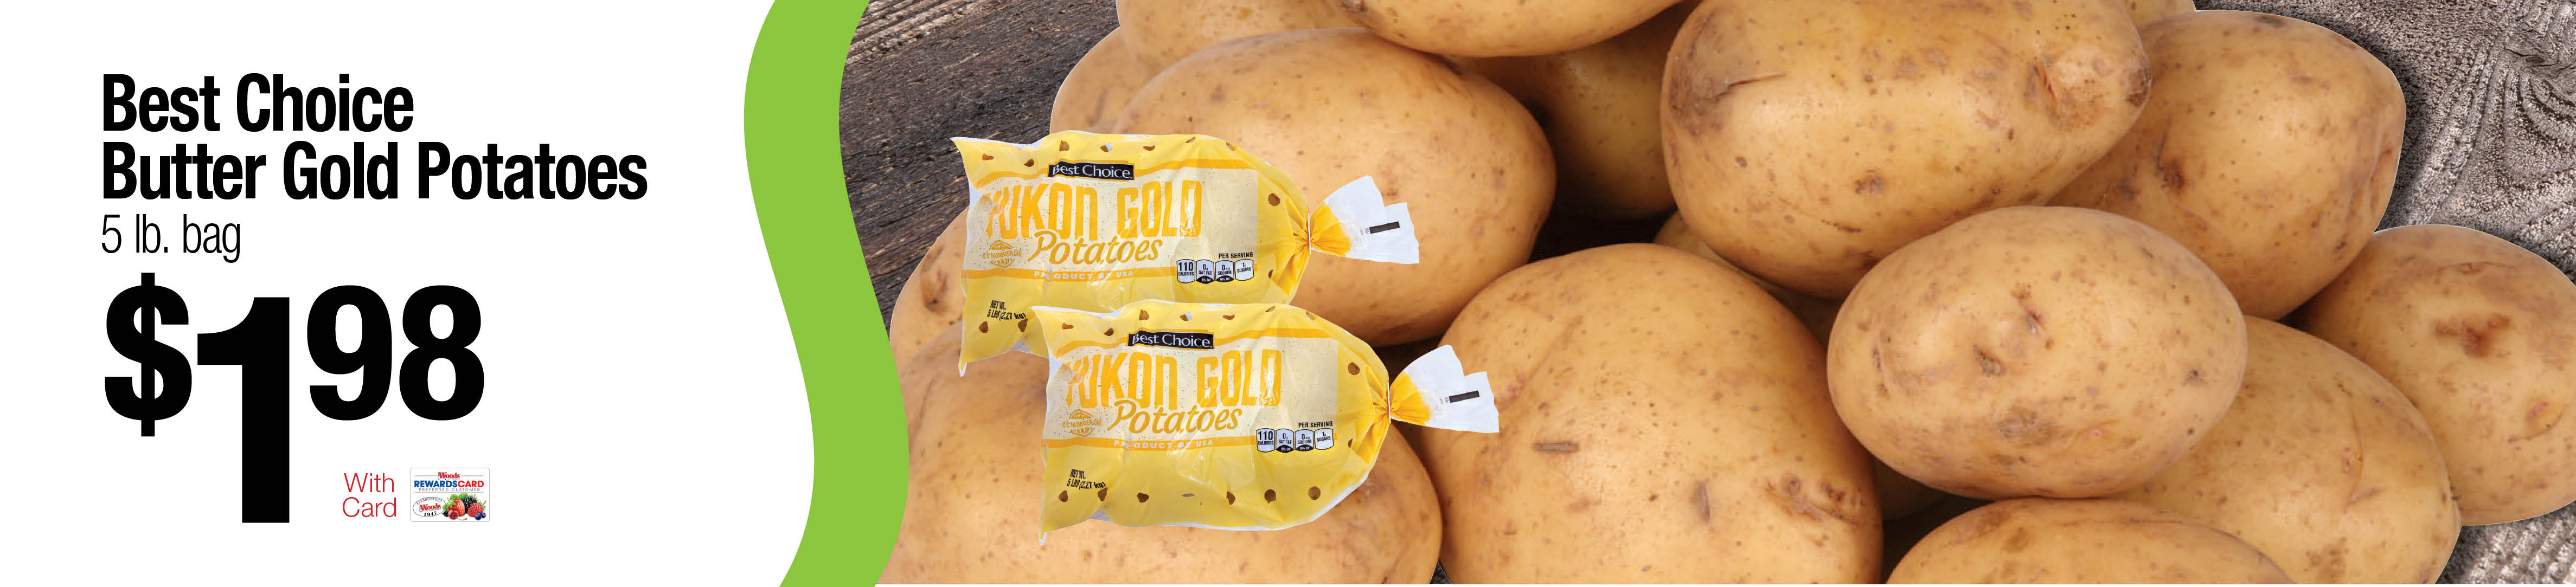 Best Choice Butter Gold Potatoes